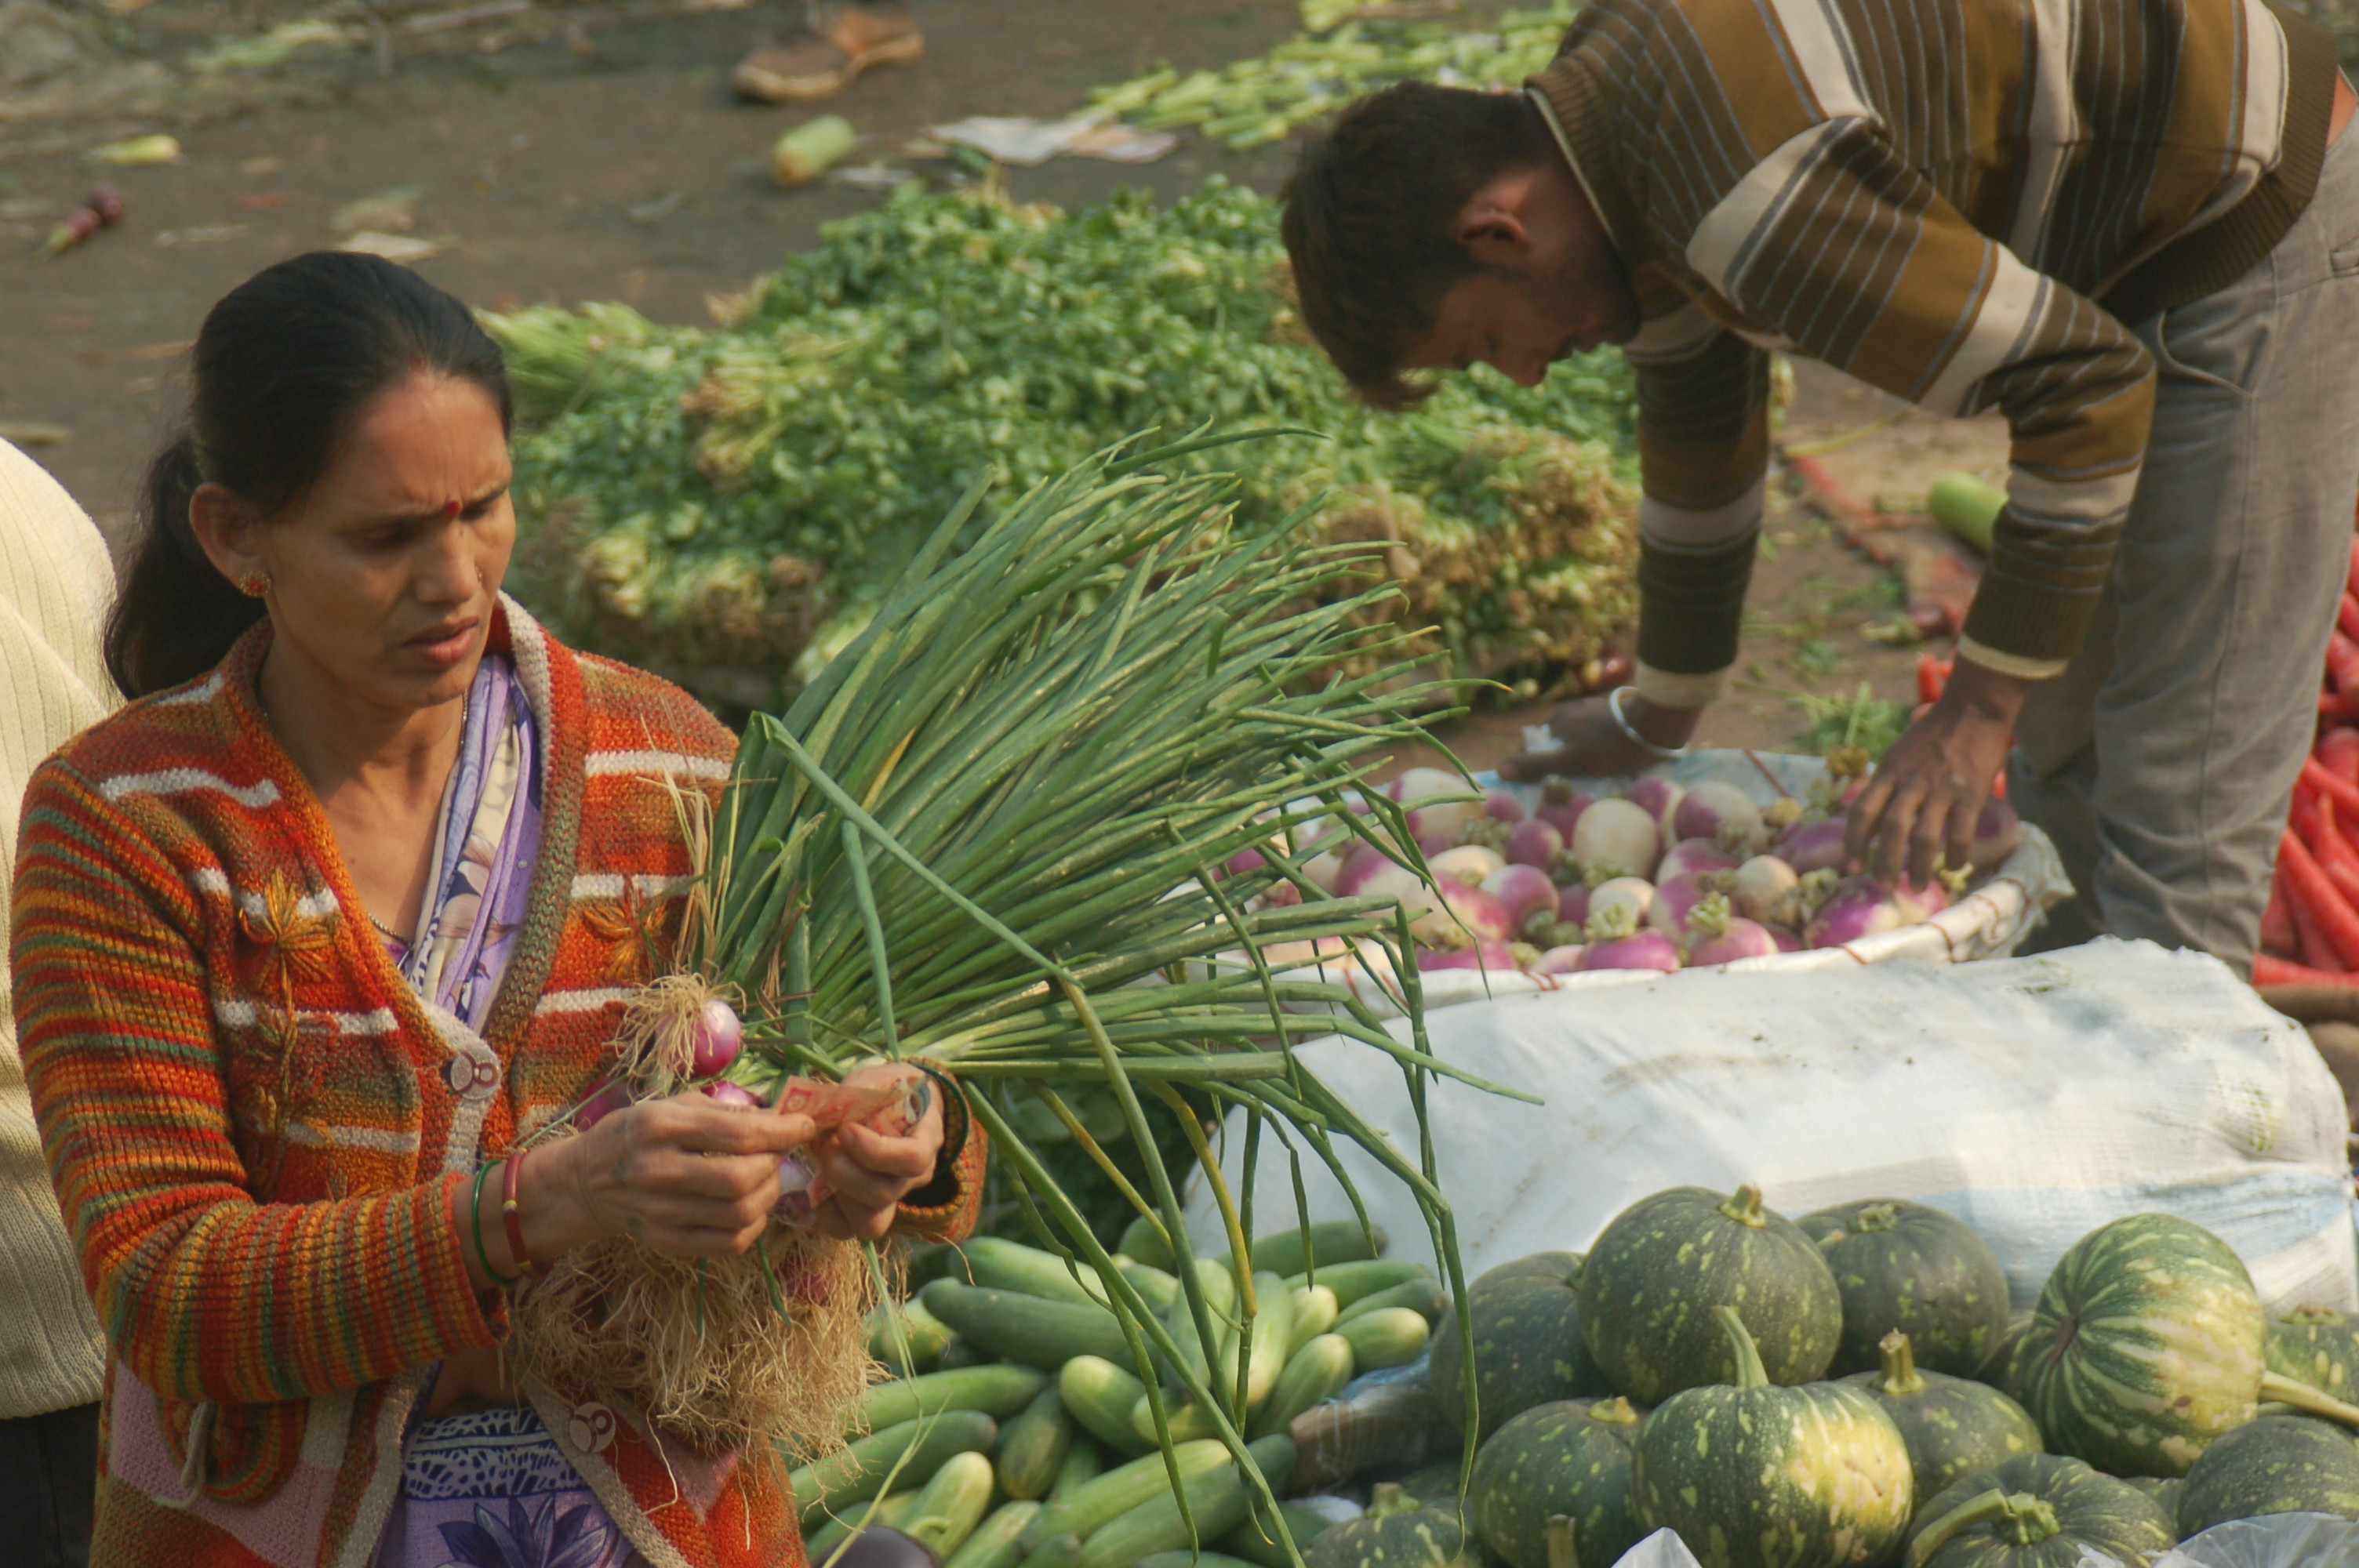 Ambitious undernutrition goals in 2013 Global Food Policy Report